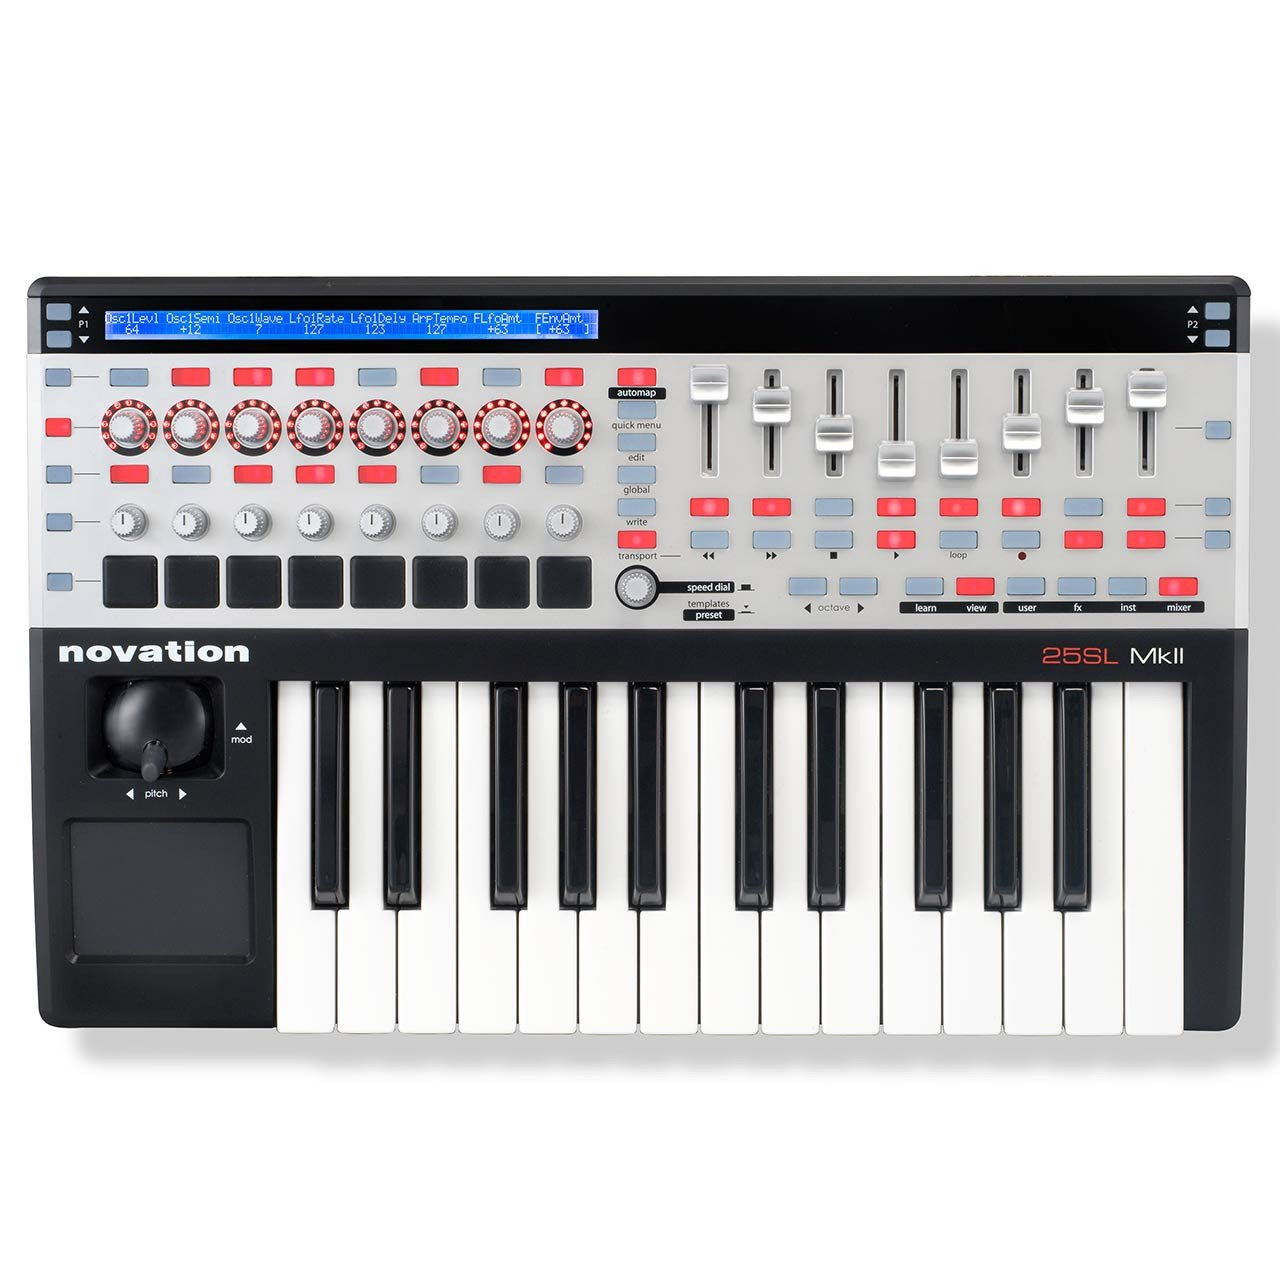 Novation 25 SL MKII MIDI Controller Keyboard with Automap